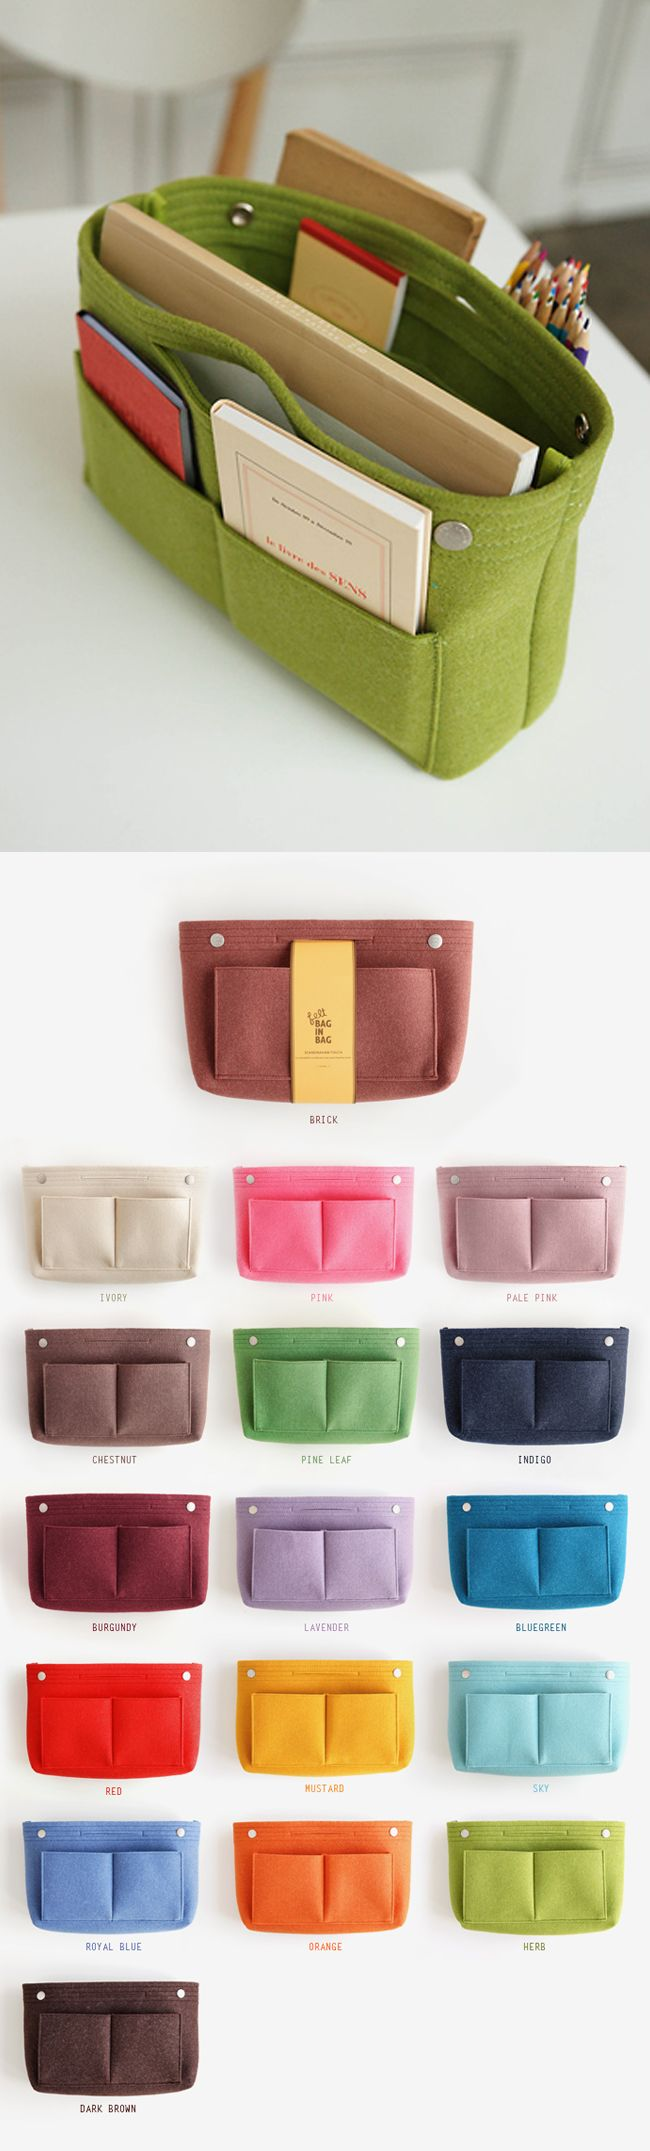 The best way to organize your cluttery mess of a bag is with this beautifully made, organizer's dream Felt Purse Organizer. It's lightweight and perfect for big purses and tote bags that need extra help with keeping things together!